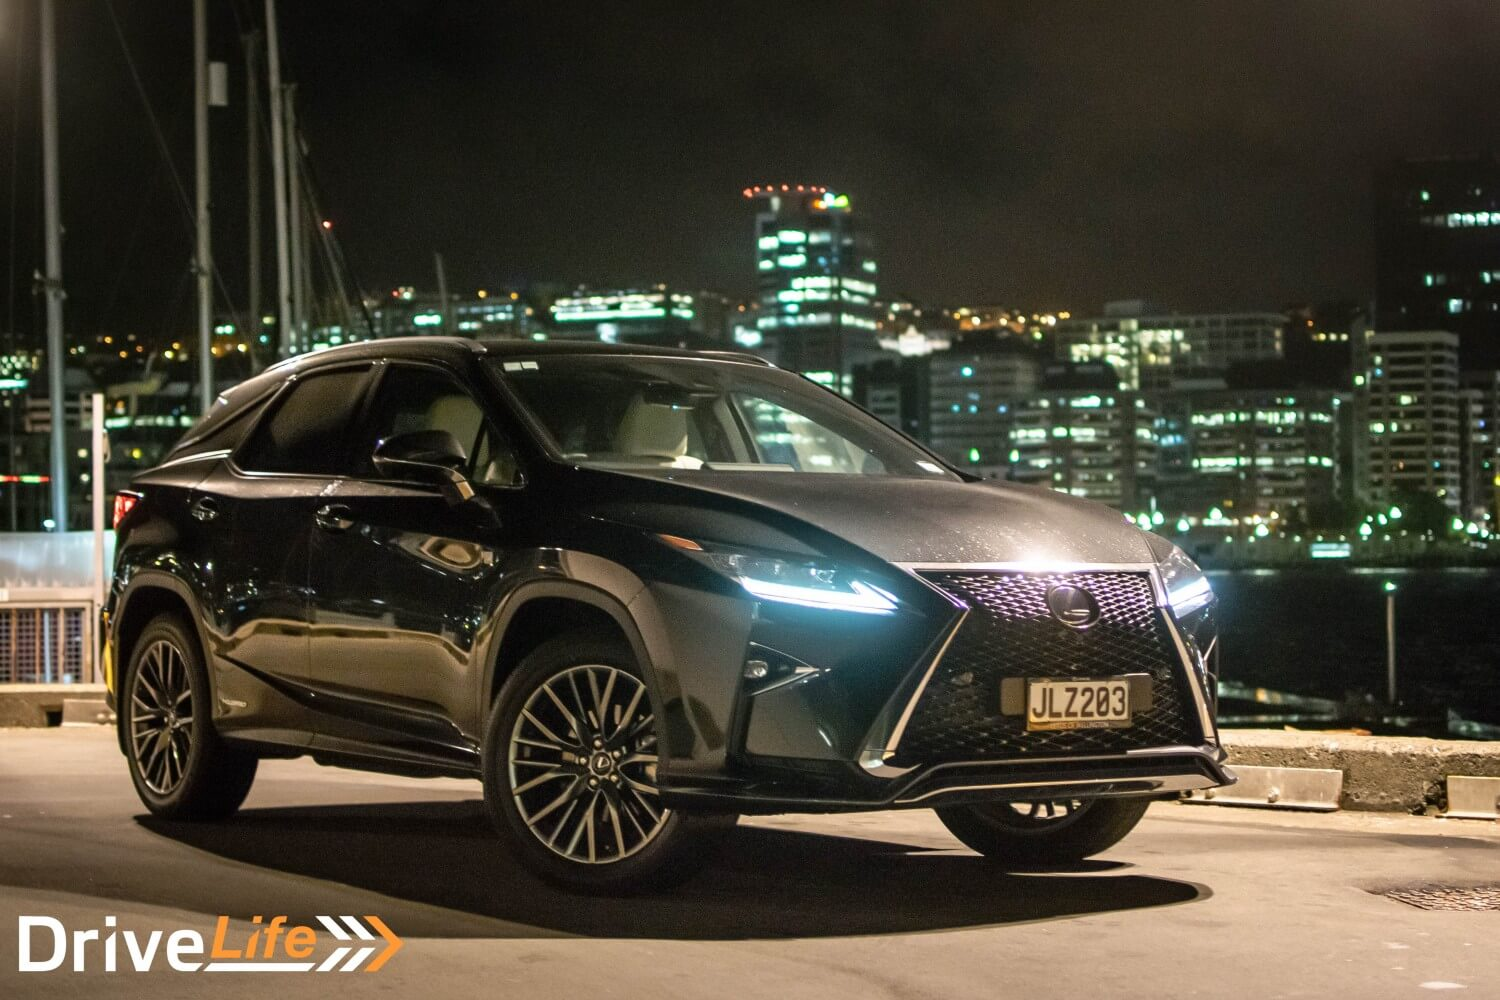 Drive Life Nz Car Review Lexus Rx450h F